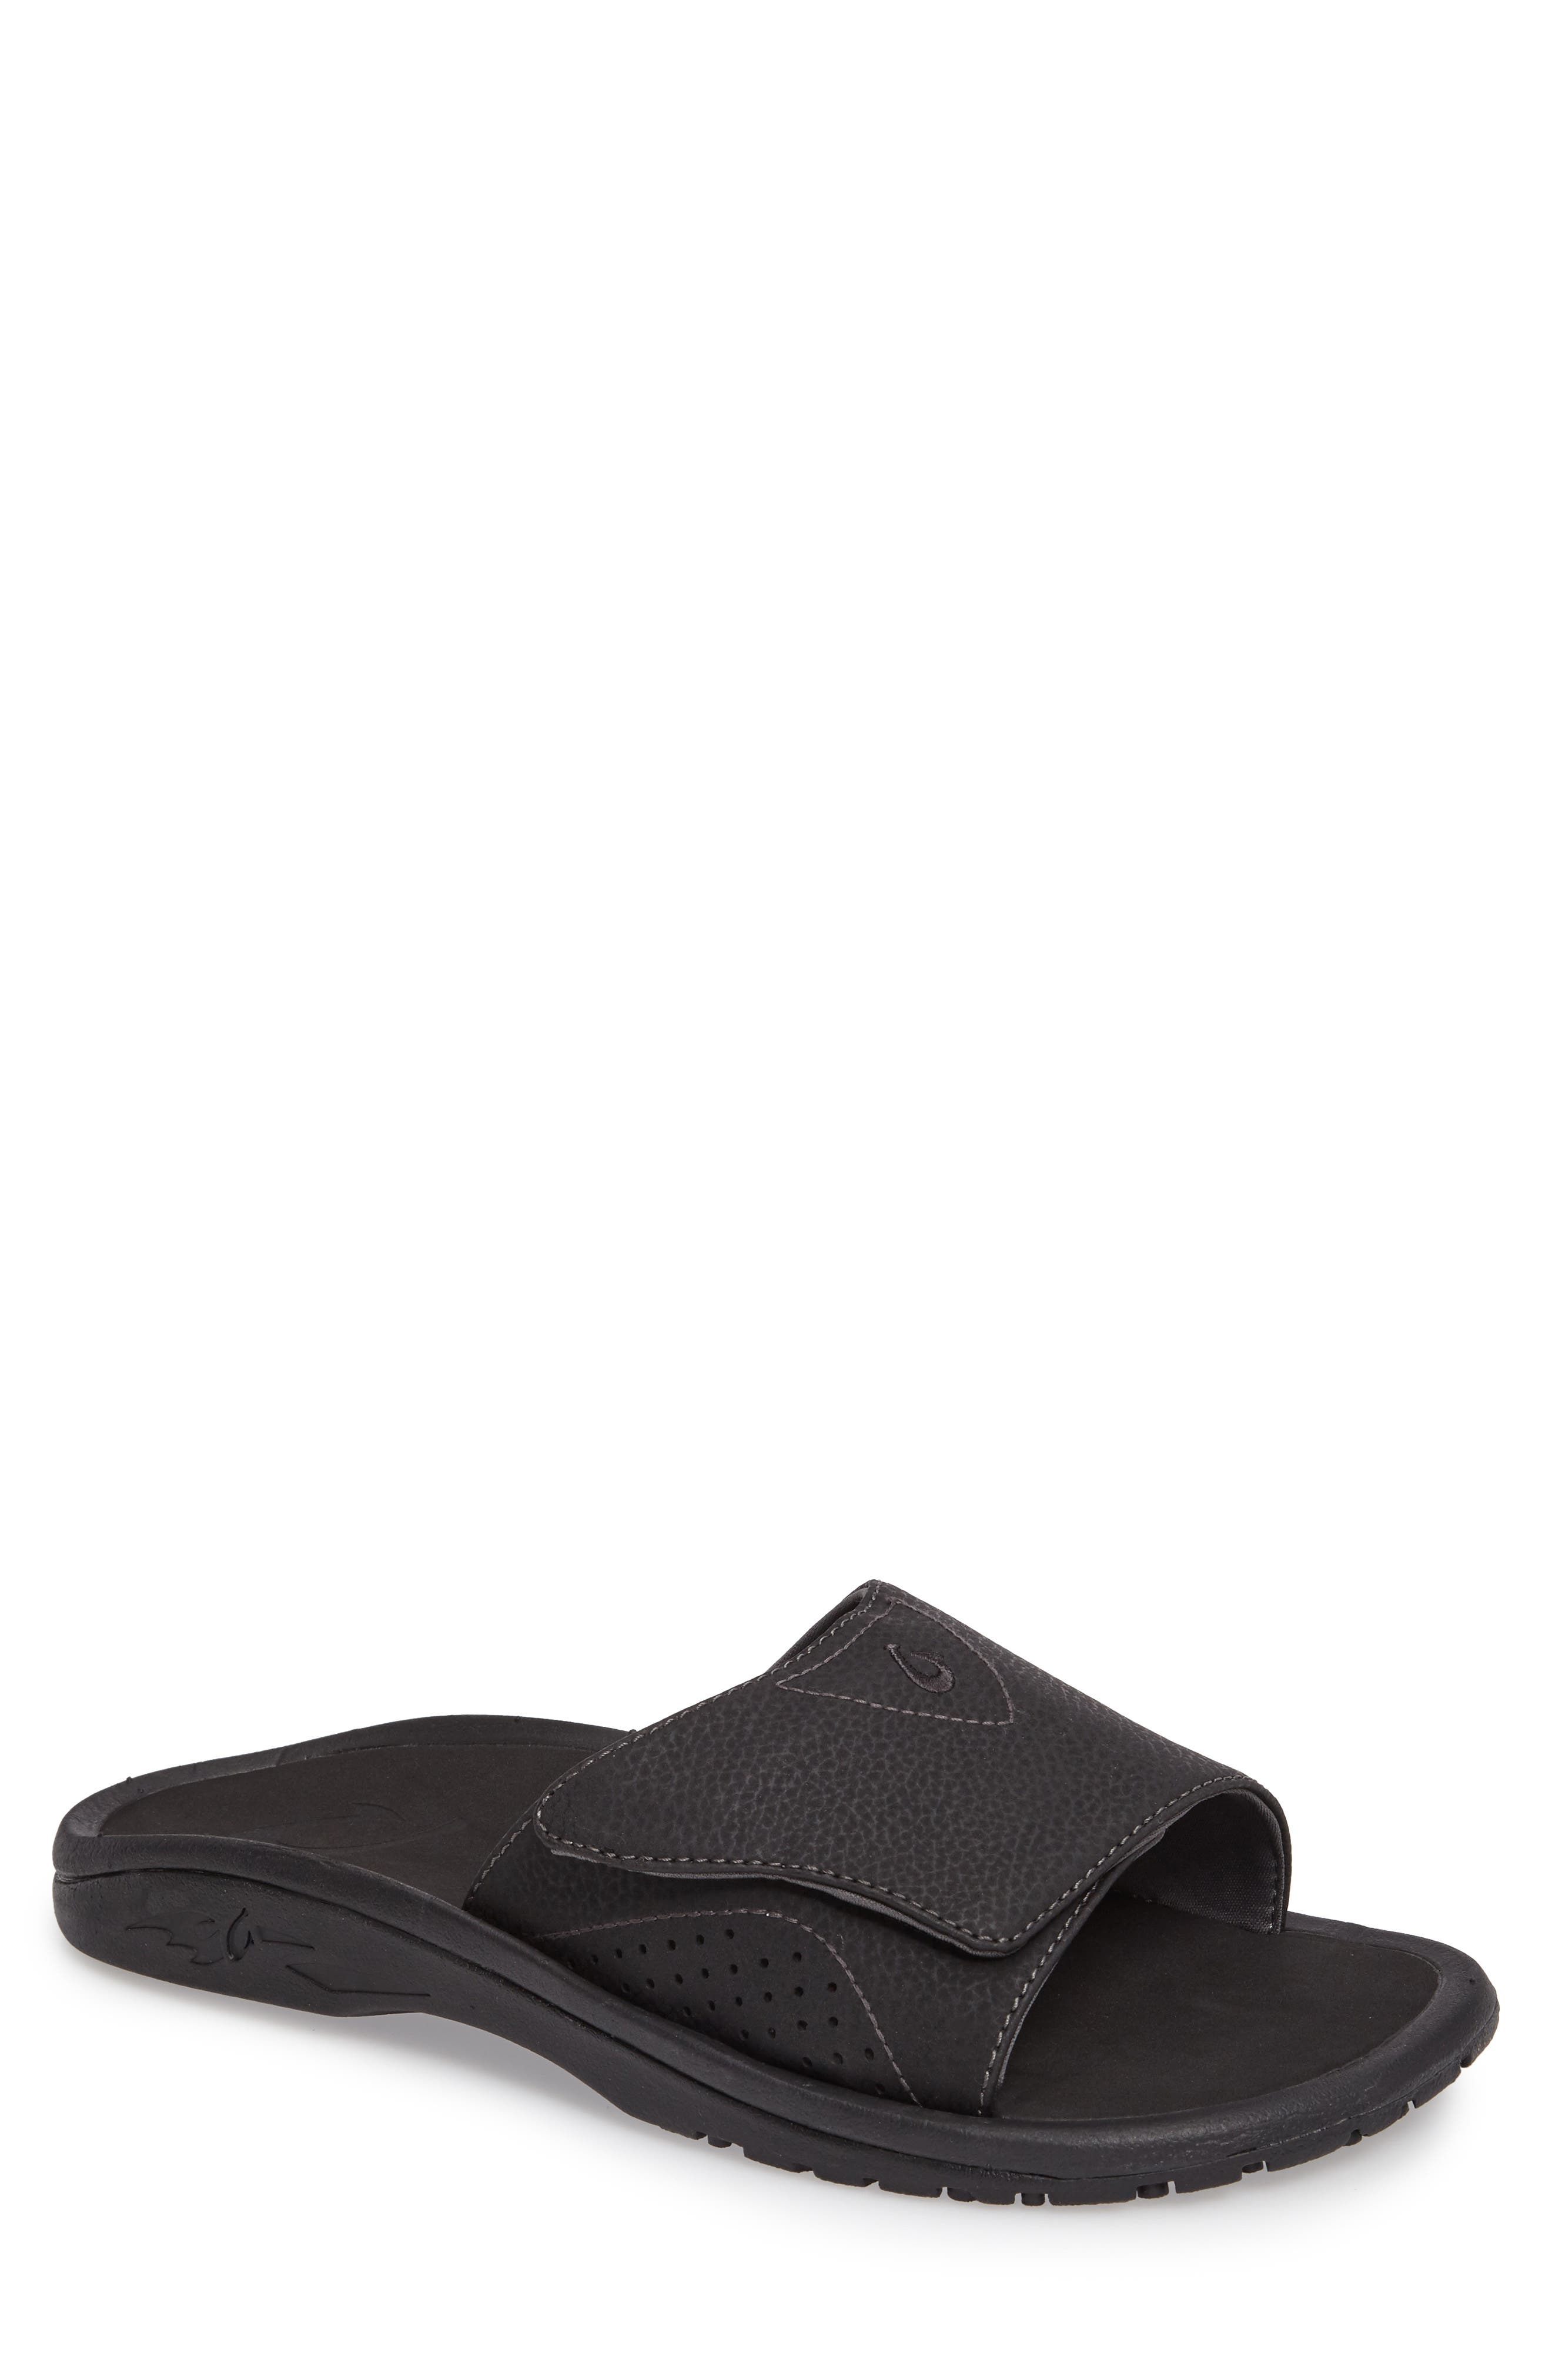 OLUKAI, Nalu Slide Sandal, Main thumbnail 1, color, BLACK/ BLACK